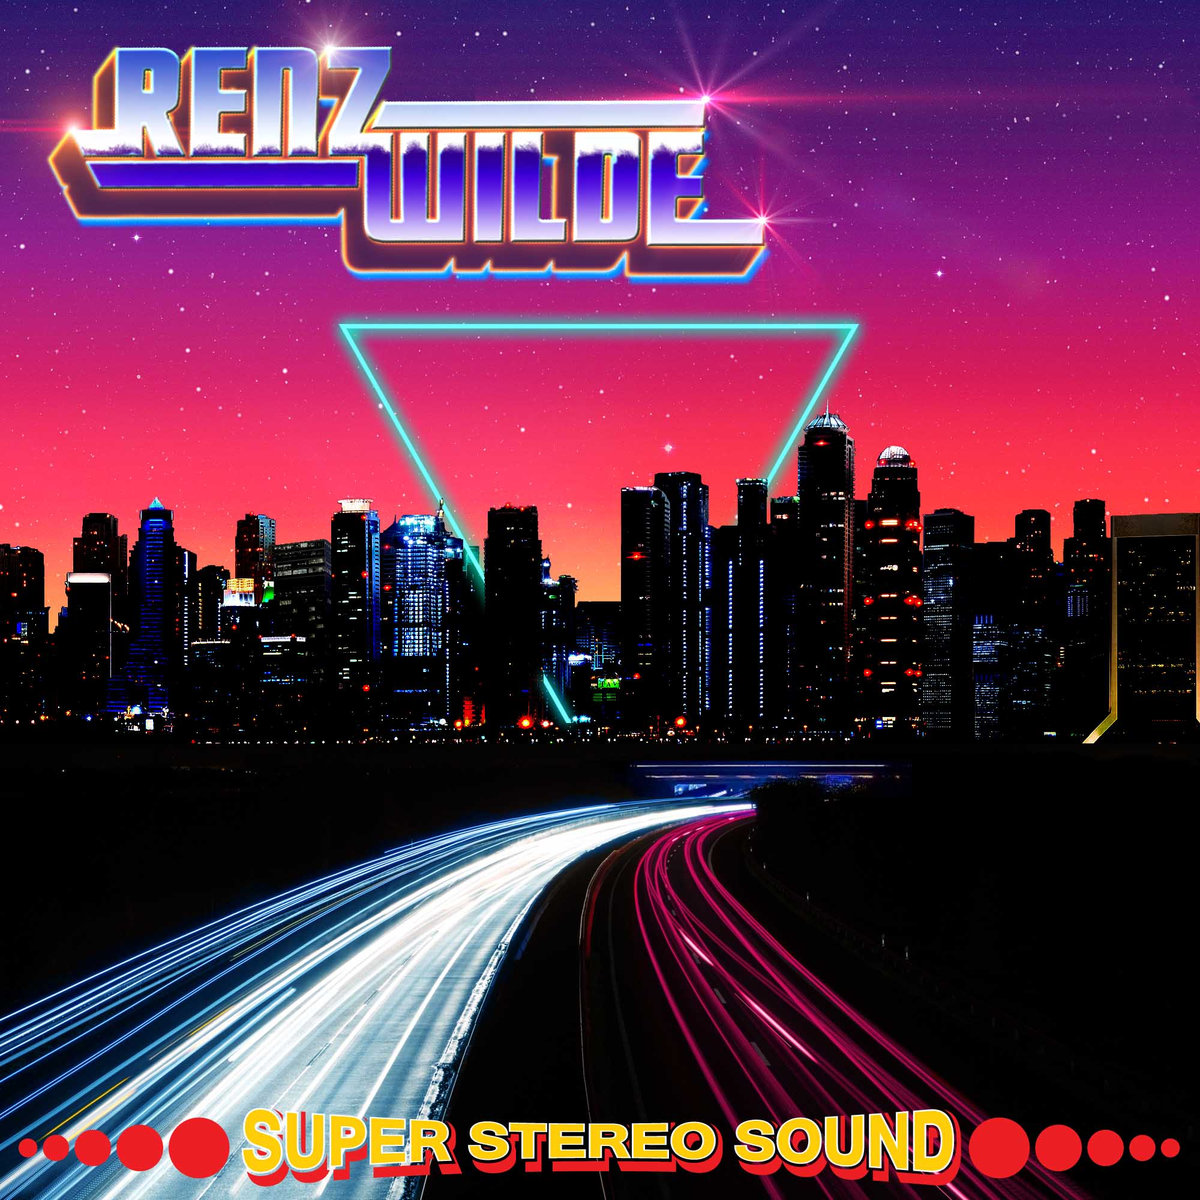 Renz WildeSuper Stereo Sound-Renz Wilde-Art